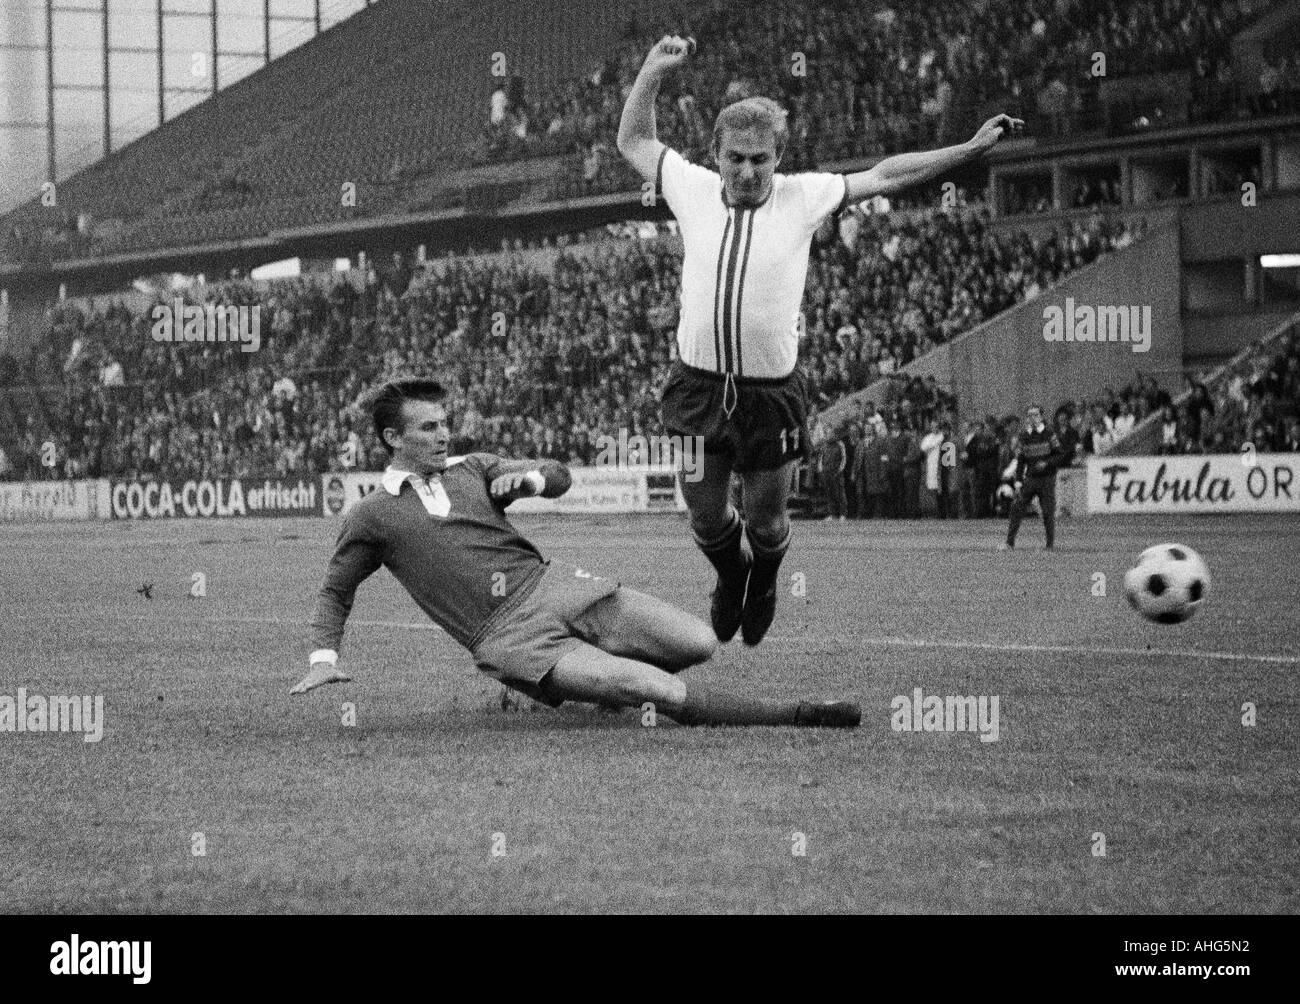 football, Bundesliga, 1968/1969, Wedau Stadium in Duisburg, MSV Duisburg versus 1. FC Kaiserslautern 0:0, scene of the match, duel between Manfred Mueller (Duisburg) left and Gerhard Kentschke (Kaiserslautern) - Stock Image